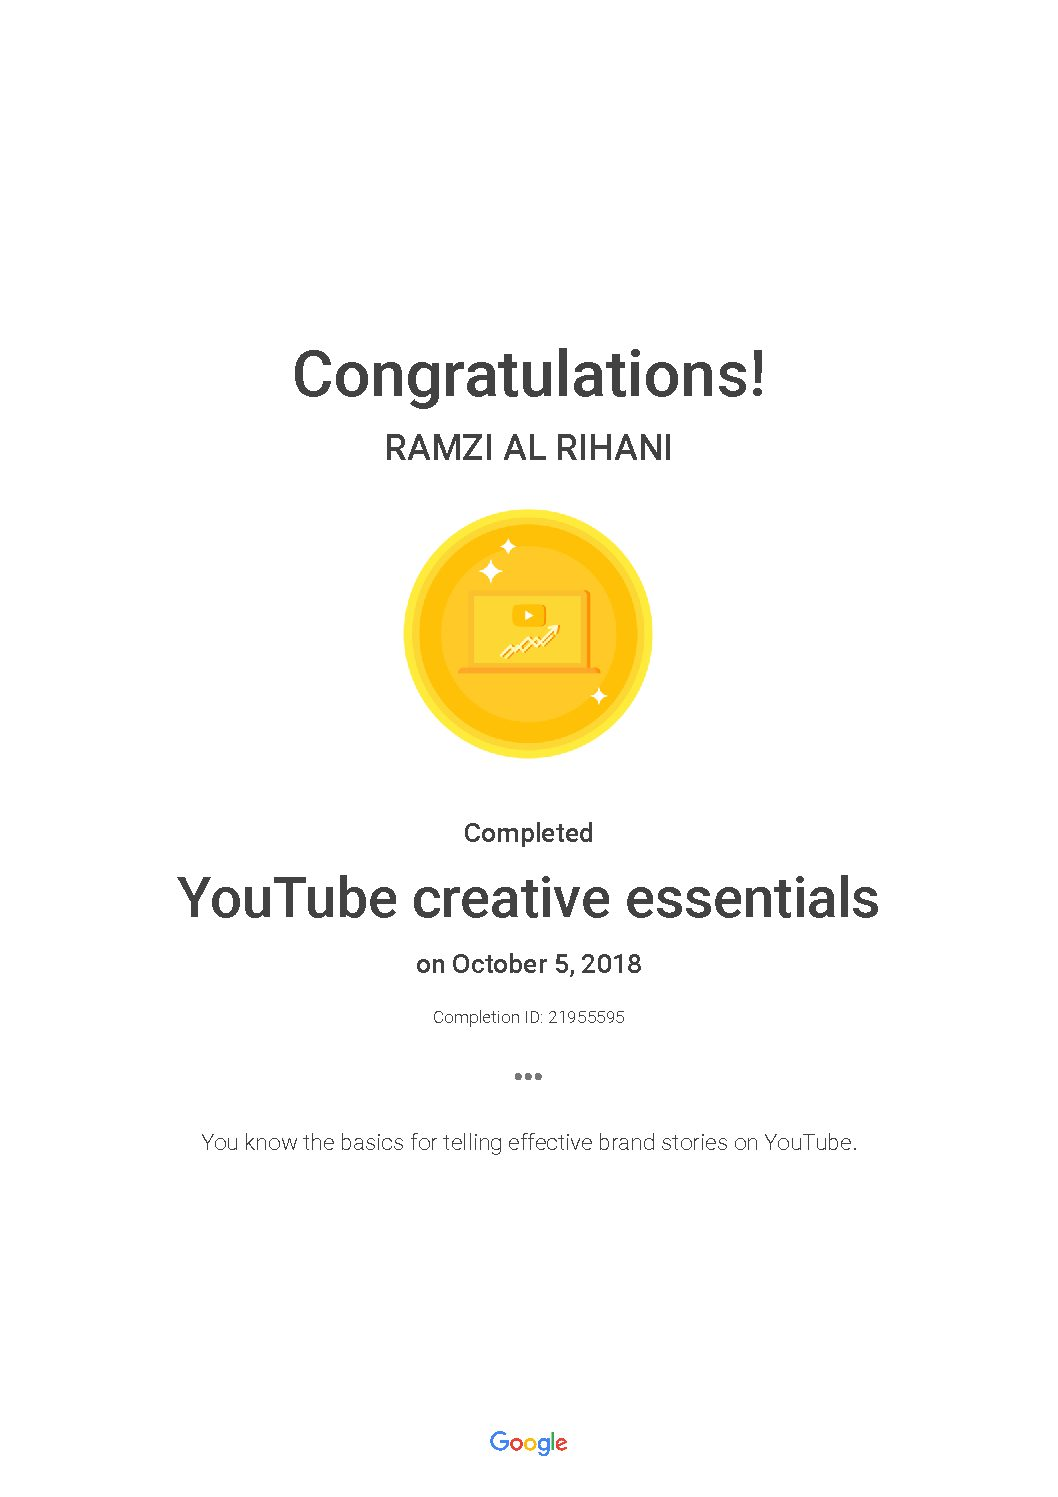 YouTube creative essentials _ Google